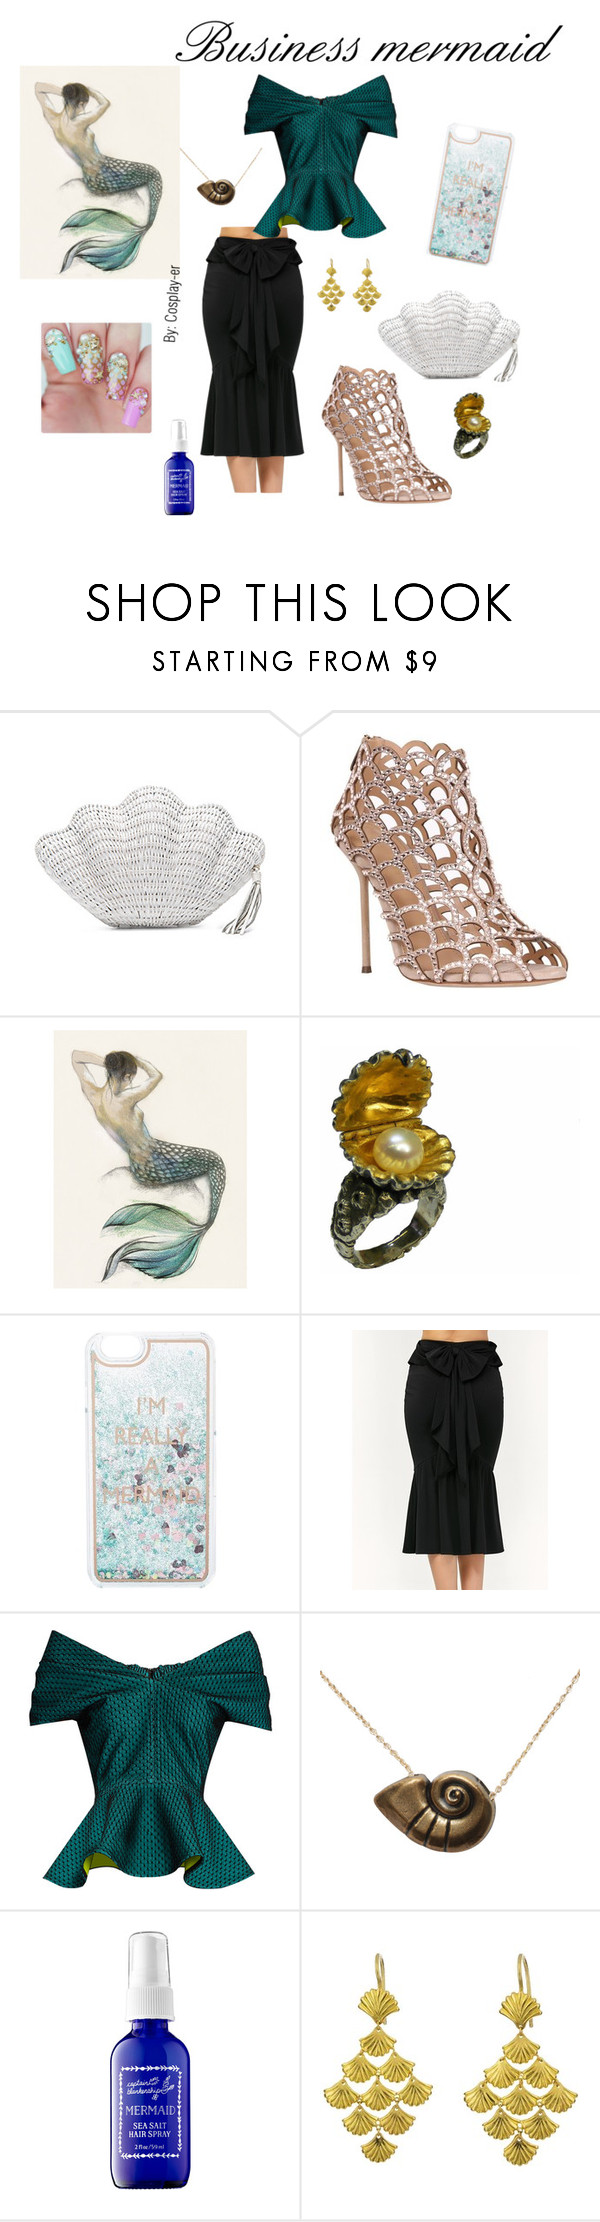 """""""Business Maermaid"""" by cosplay-er ❤ liked on Polyvore featuring Kayu, Sergio Rossi, Russell Lownsbrough, Charlotte Russe, Emilio De La Morena, Disney, Captain Blankenship and Marie Hélène de Taillac"""